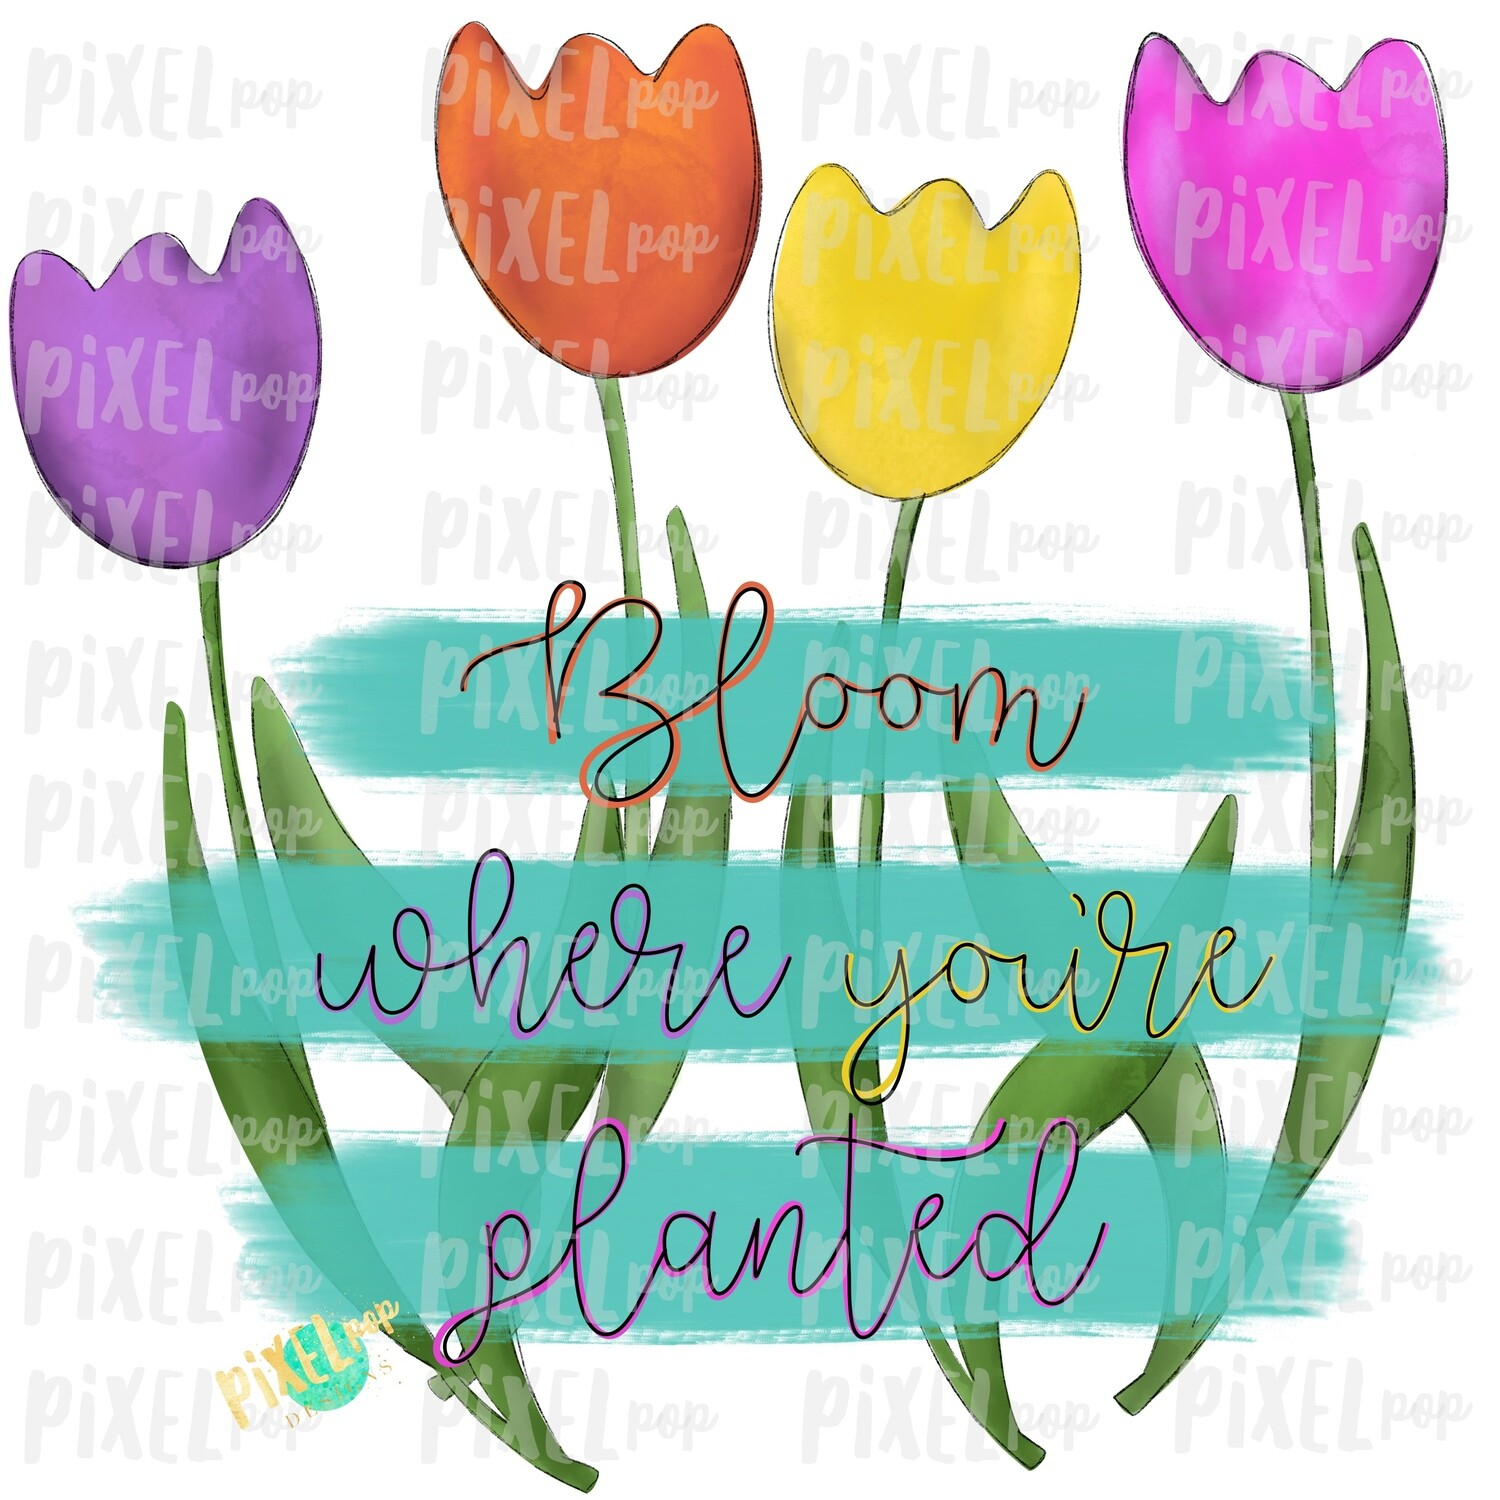 Watercolor Tulips Bloom Where You're Planted Sublimation PNG | Sublimation Design | Heat Transfer PNG | Digital Download | Printable Art